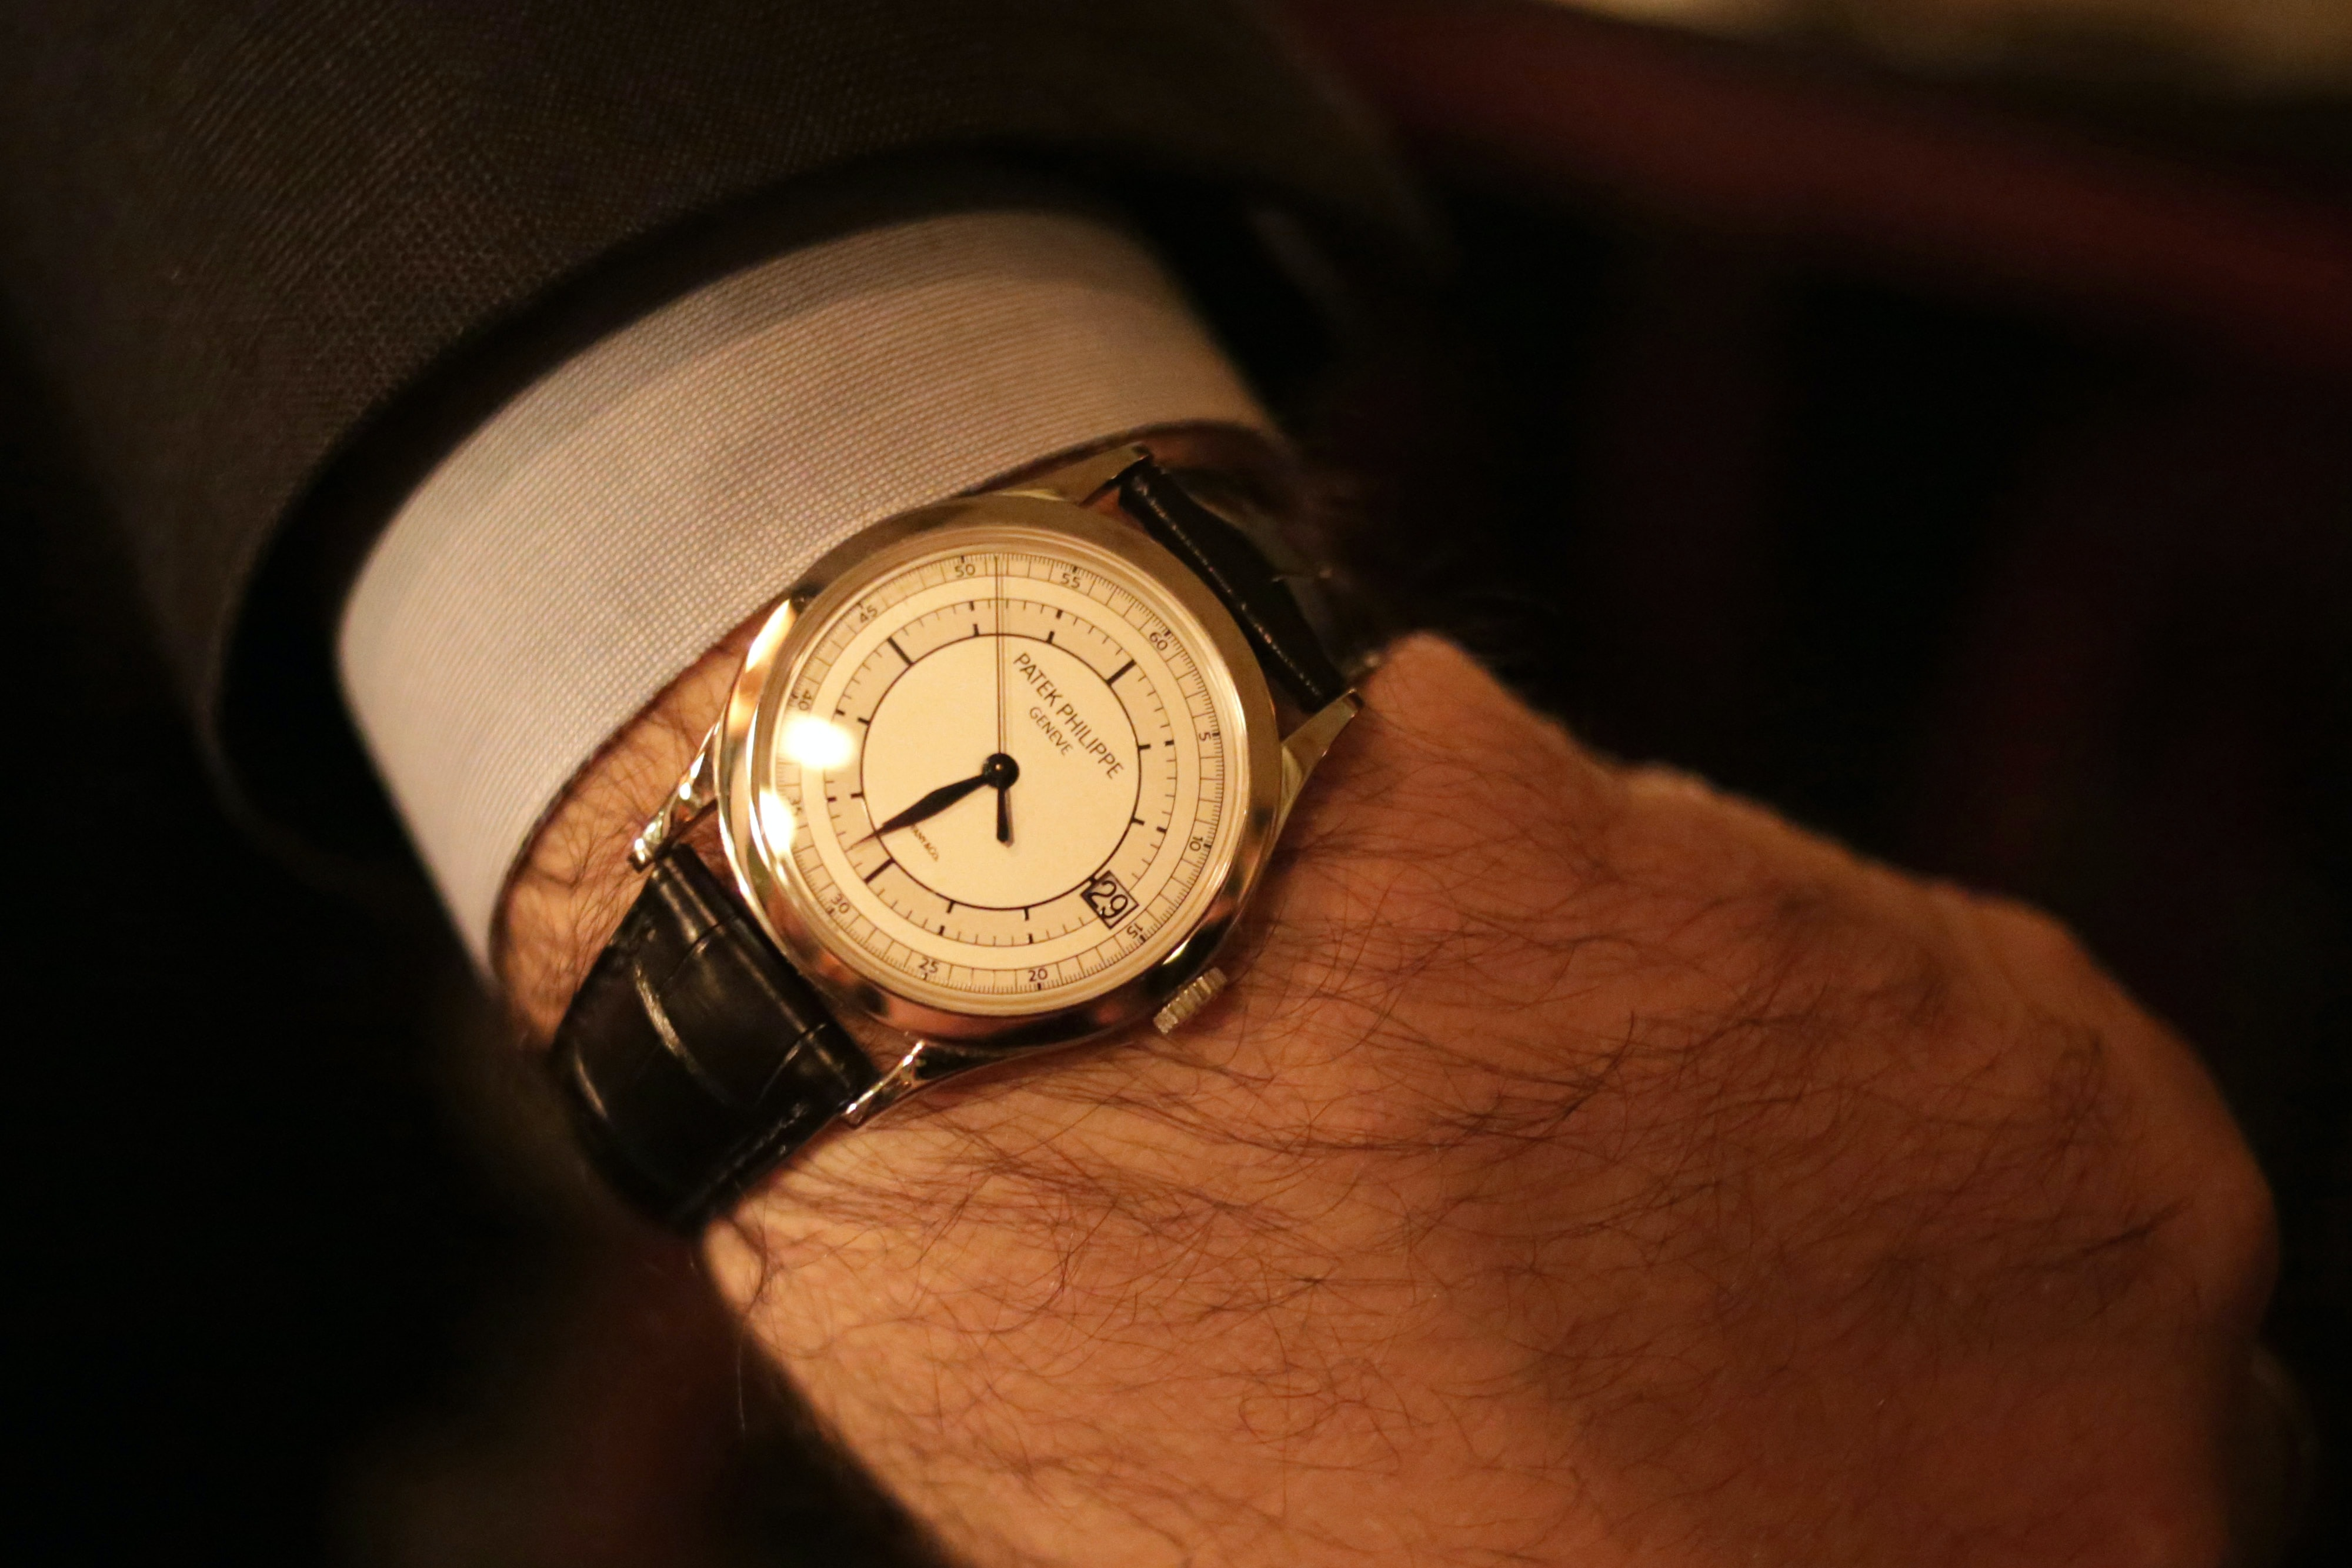 Watch Spotting: The HODINKEE #LeapDay Celebration In NYC Watch Spotting: The HODINKEE #LeapDay Celebration In NYC 588A9729